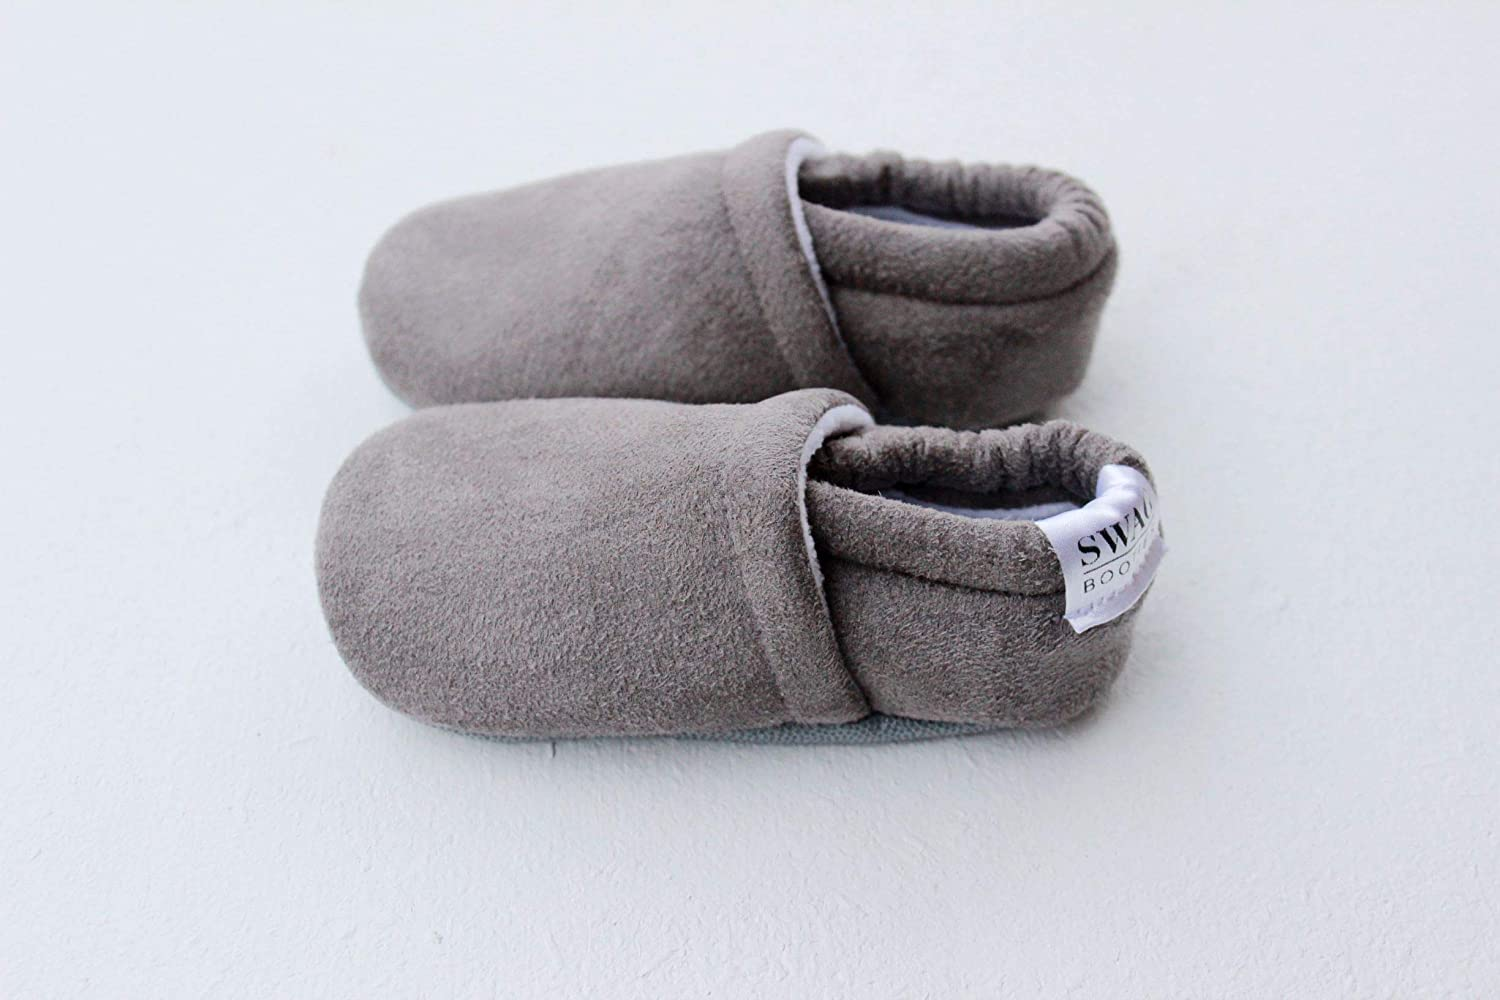 SWAG booties gray faux suede non slip sole baby newborn shoes